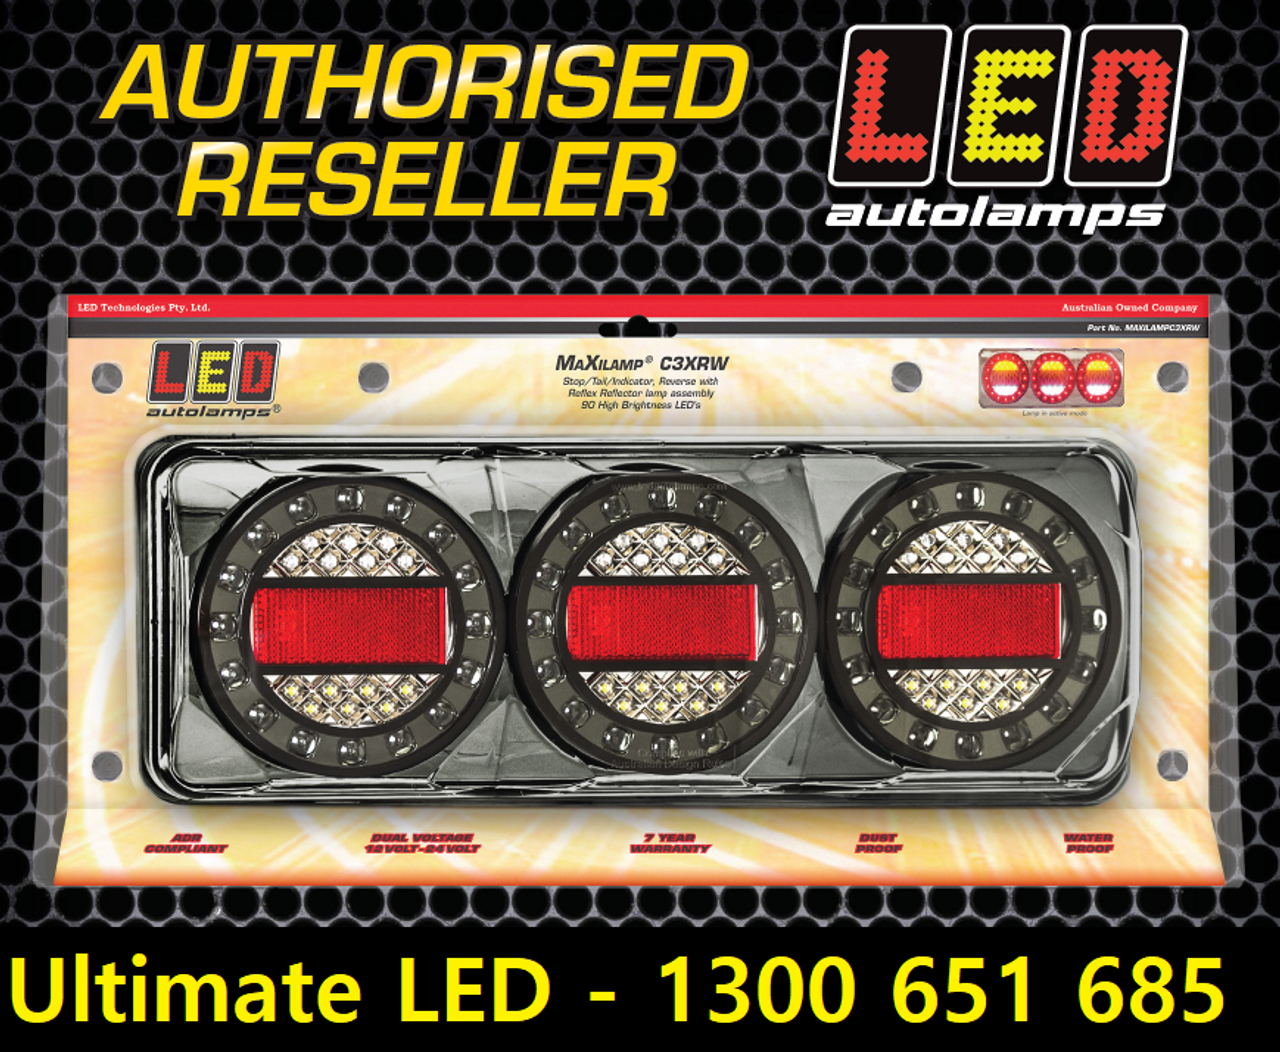 Genuine Maxilamp Combination LED Tail Light. Medium Tray & Truck Series Light. Diffused Tail Function. Sequential Indicator. Clear Lens. Stop, Tail & Indicator Lights. Twin Pack. Multi-Volt 12v & 24v. Autolamp. 385ARRM-2. 7 Year Warranty